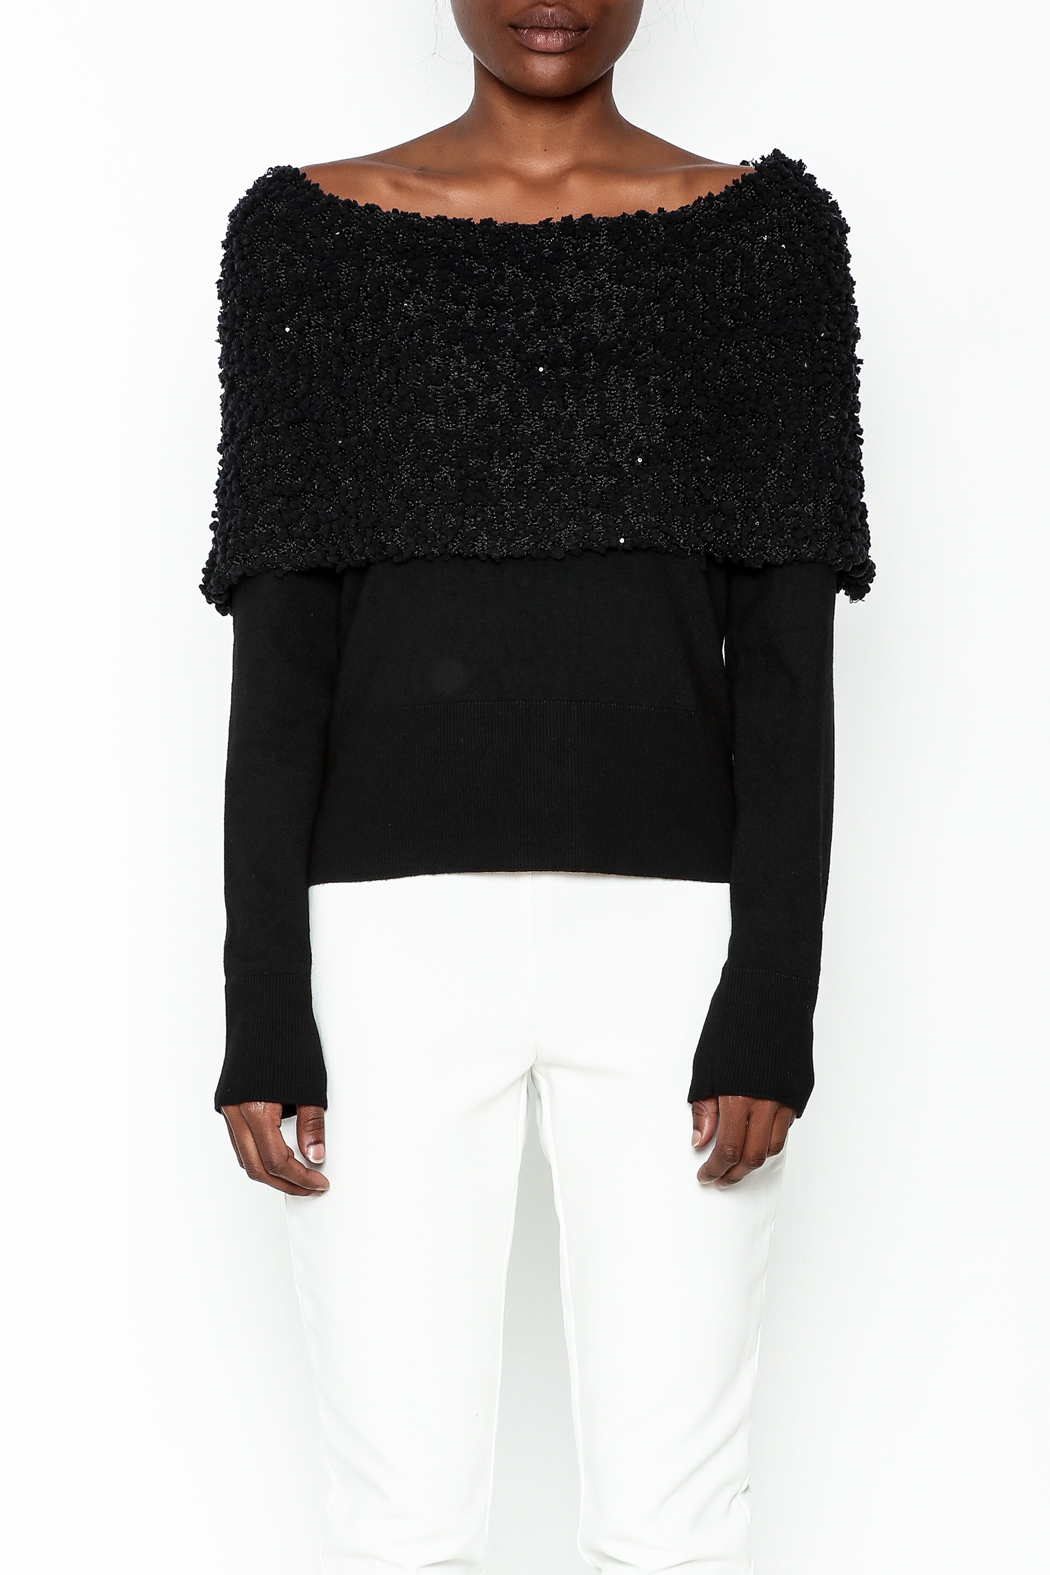 Charlie Paige Sparkle Collar Sweater - Front Full Image